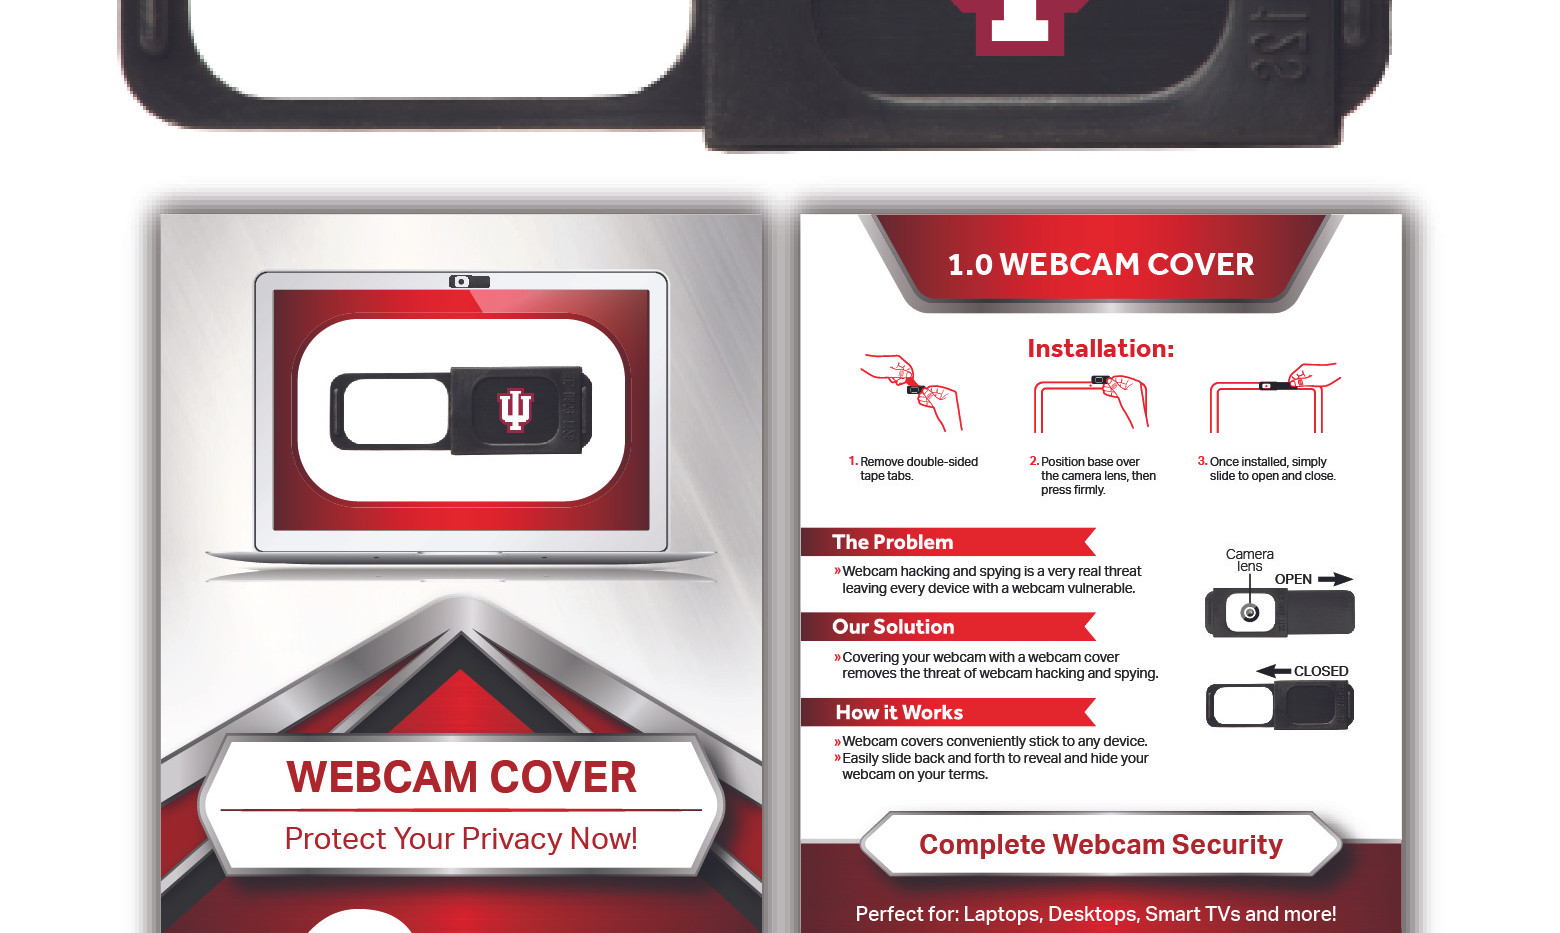 W1.0 Original Webcam Cover with Standard Packaging